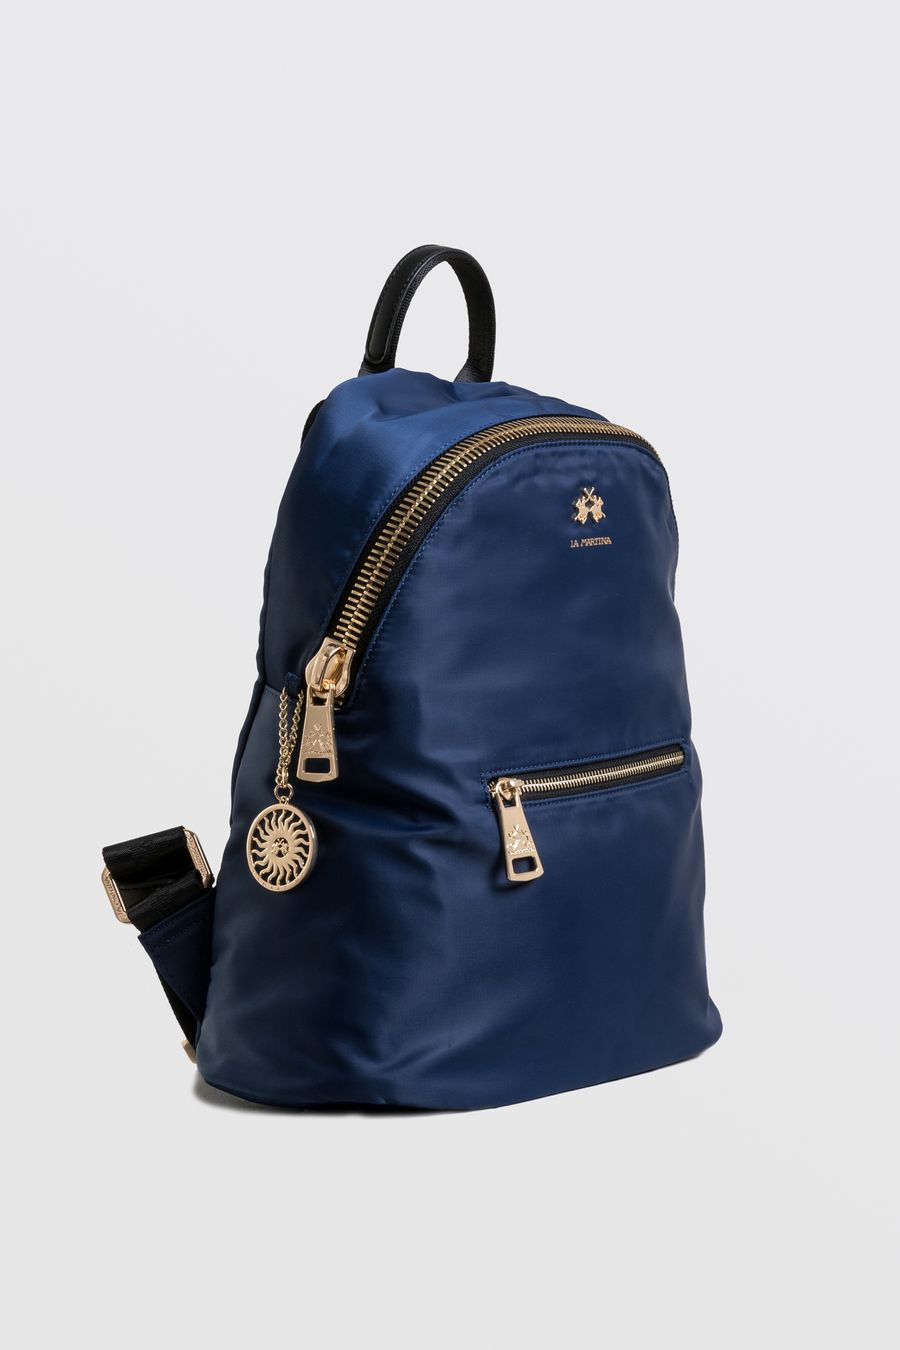 BACKPACK-MALI-NAVY